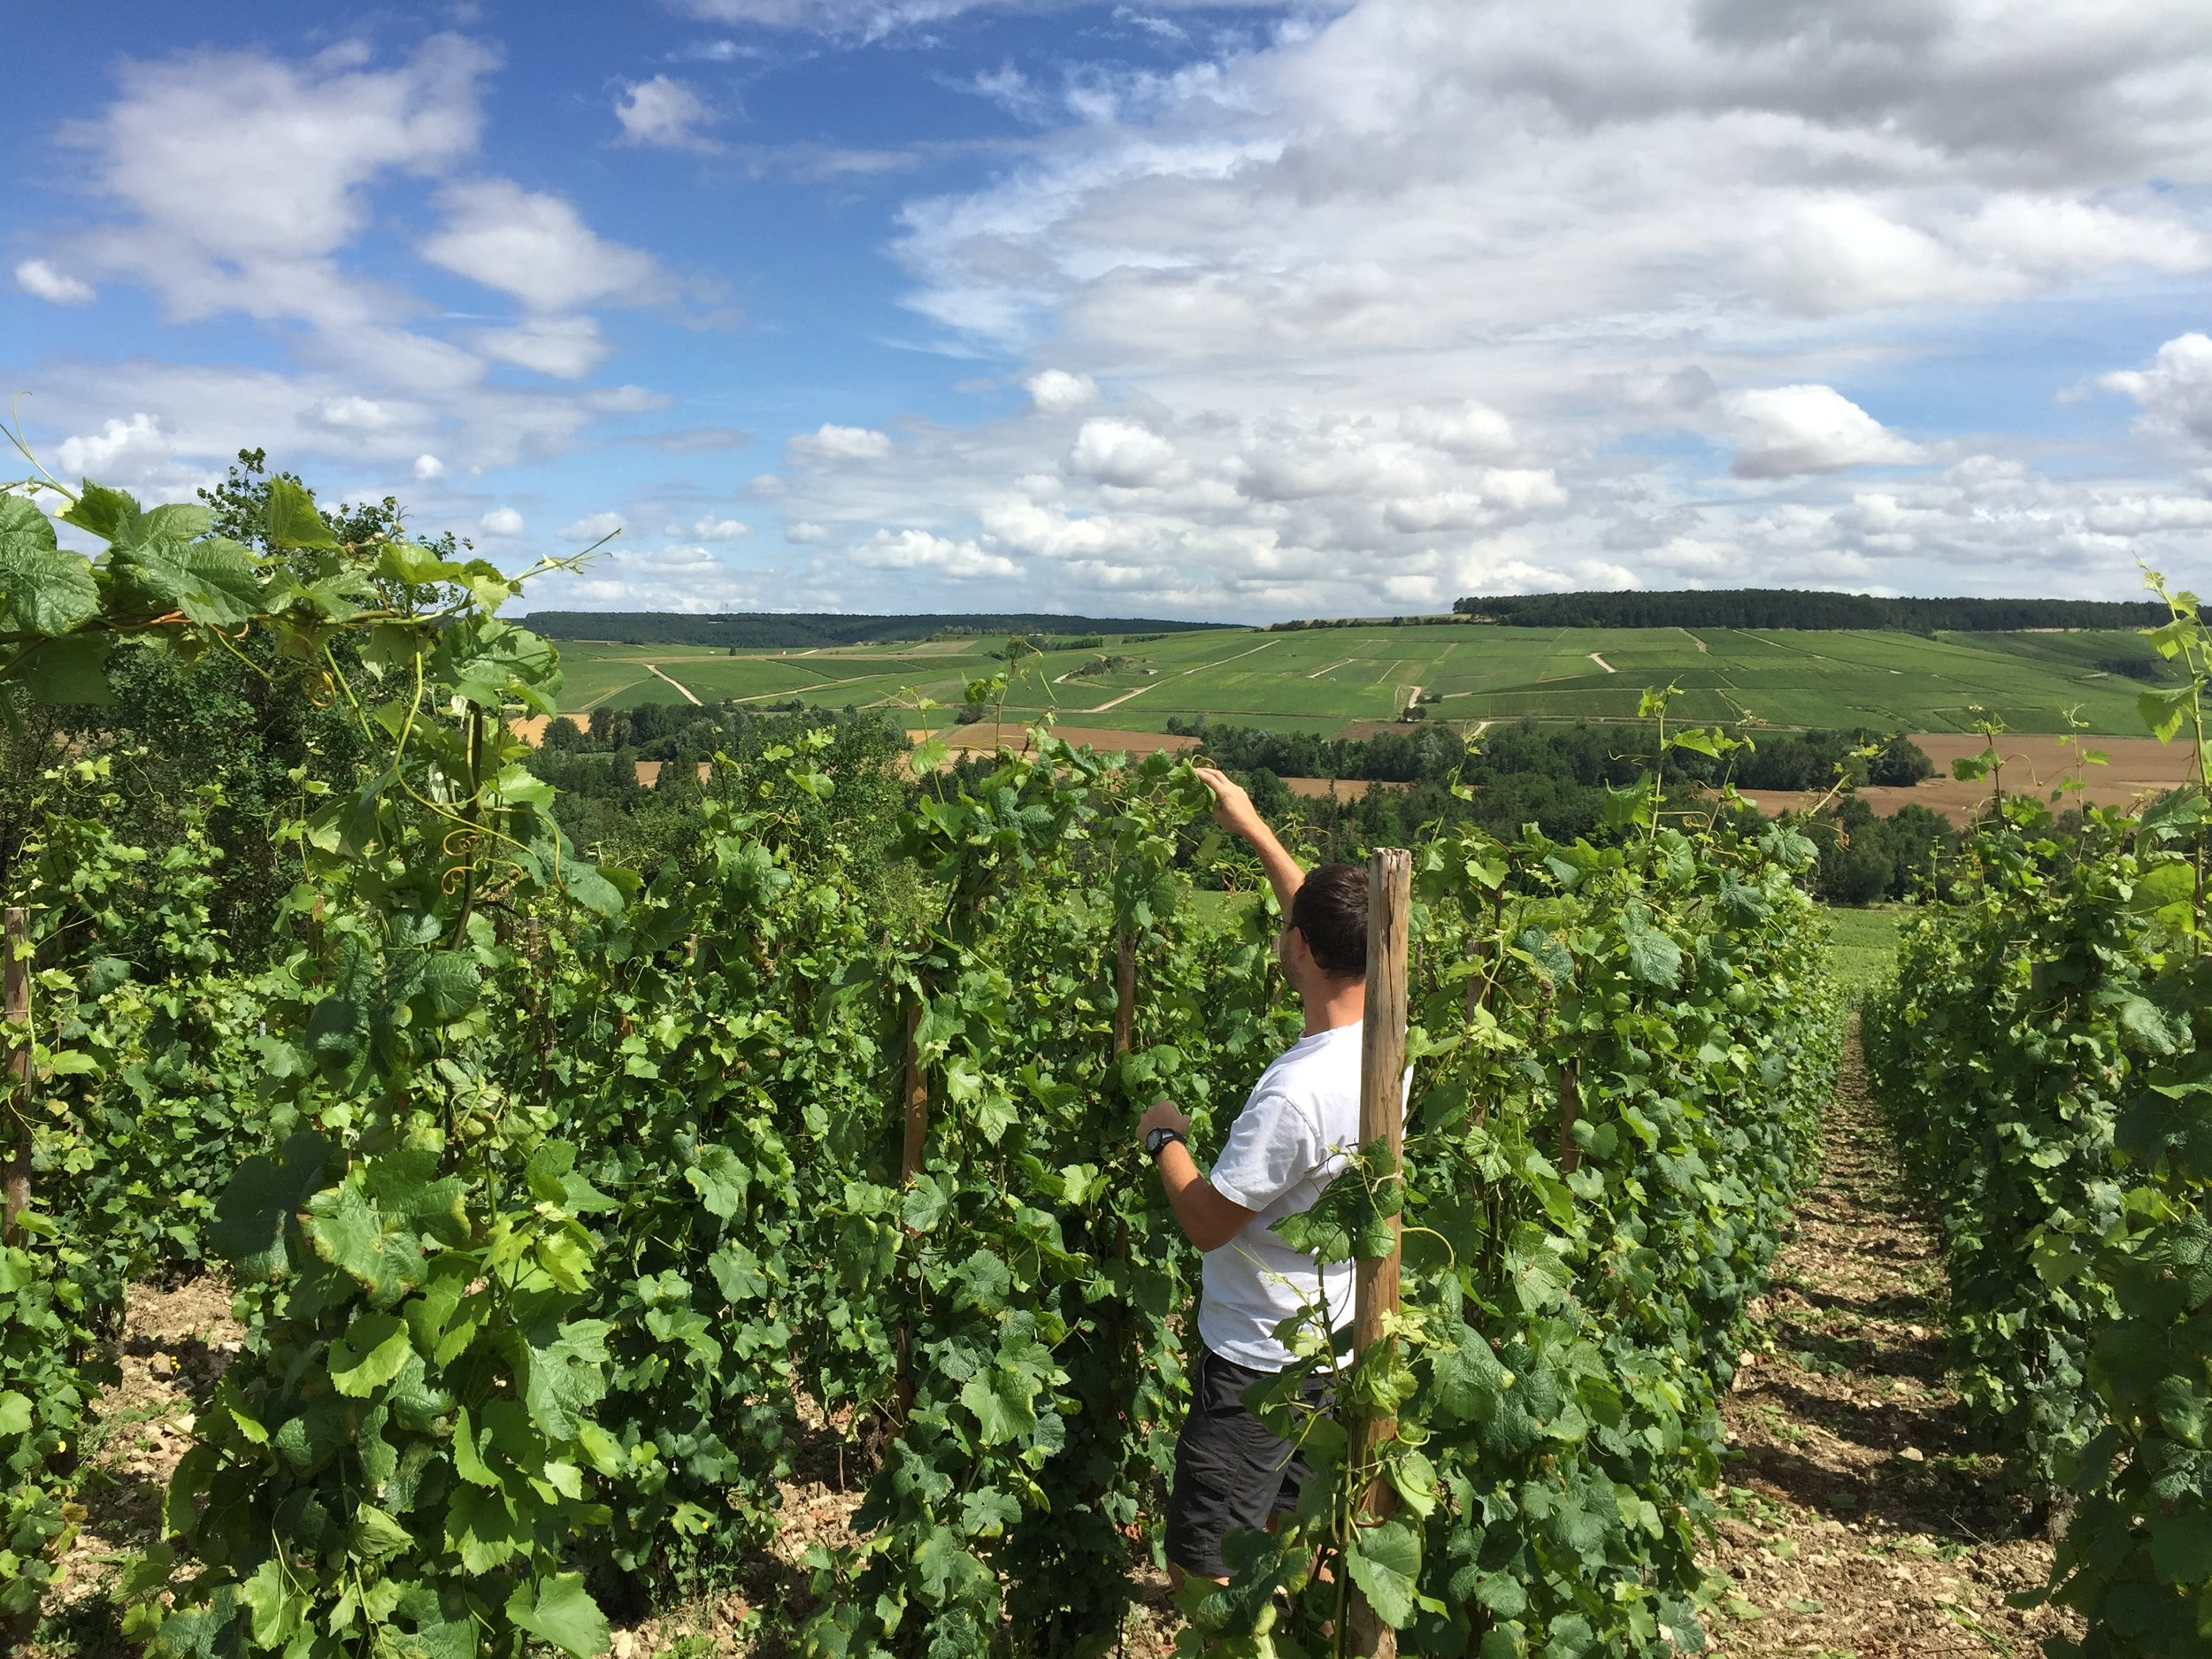 Aurélien Gerbais in his vineyards, Celles-sur-Ource, France